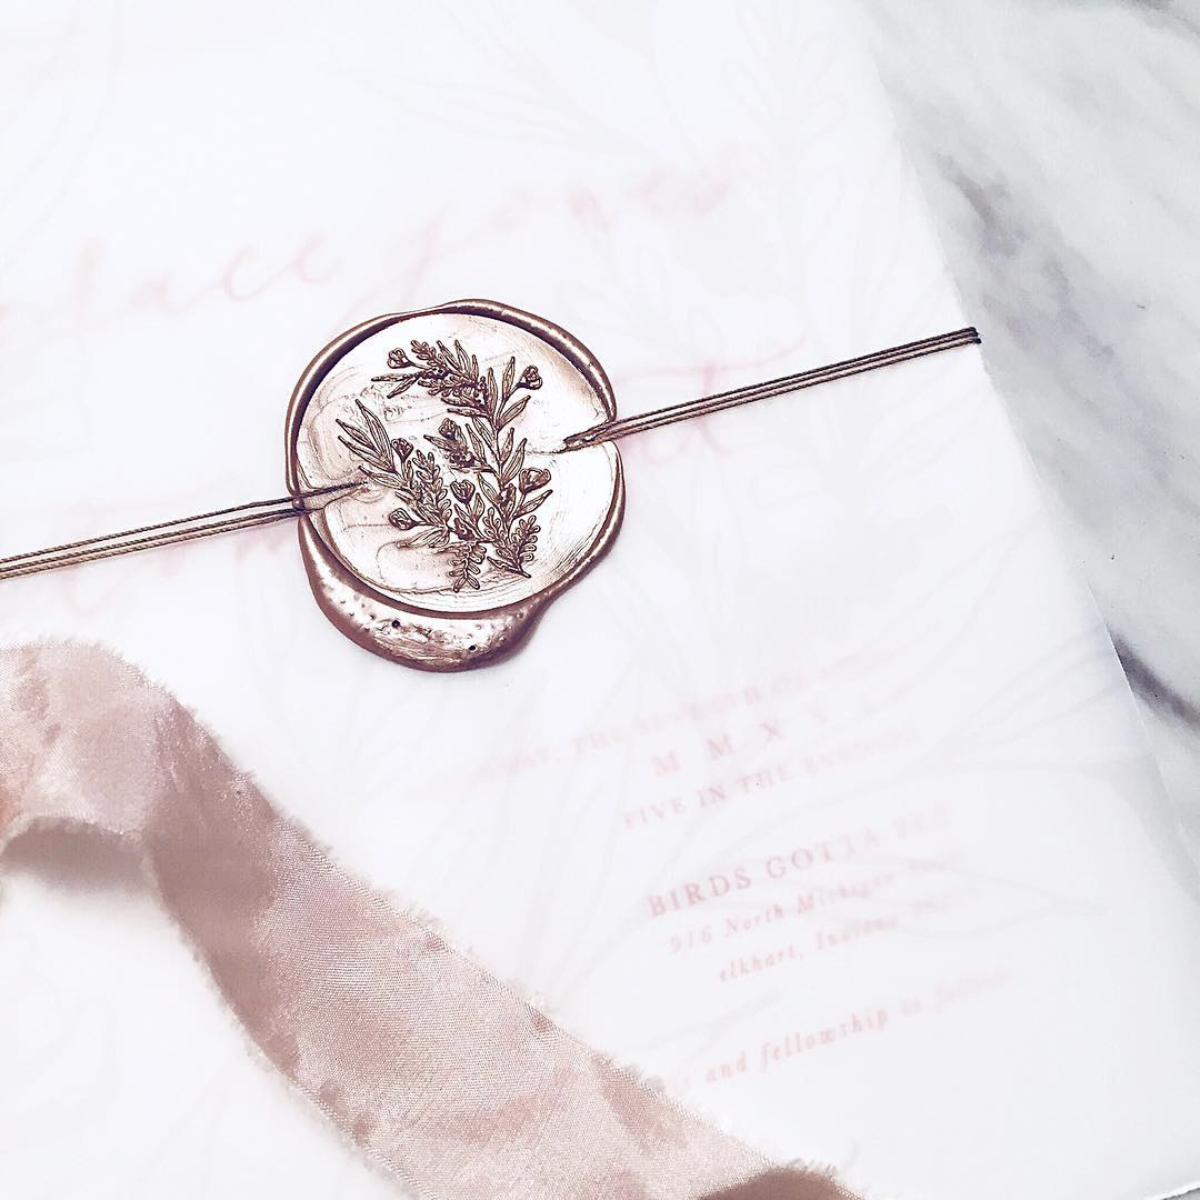 Thin twine finished off with a wax seal. Design, photo and styling by  Sarah B Calligraphy .